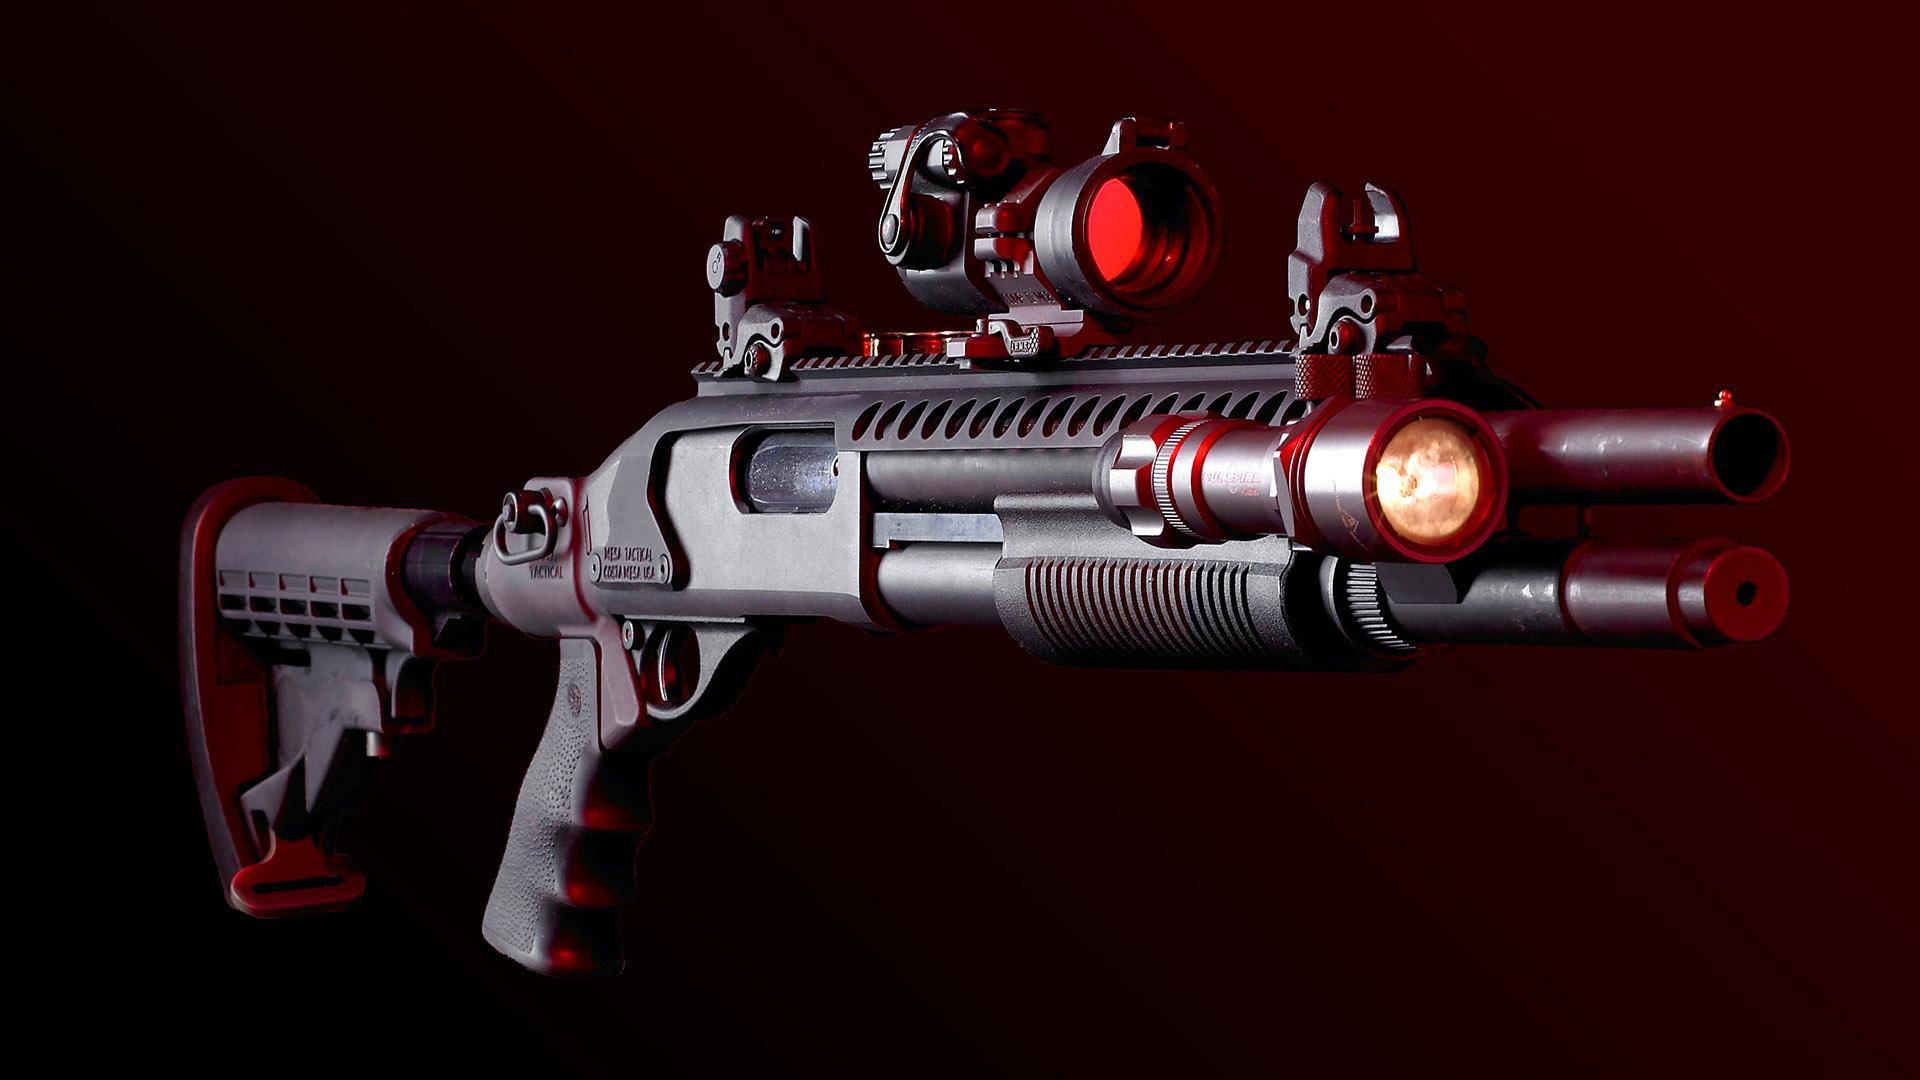 Weapon Wallpaper 4k Ultra Hd For Android Apk Download